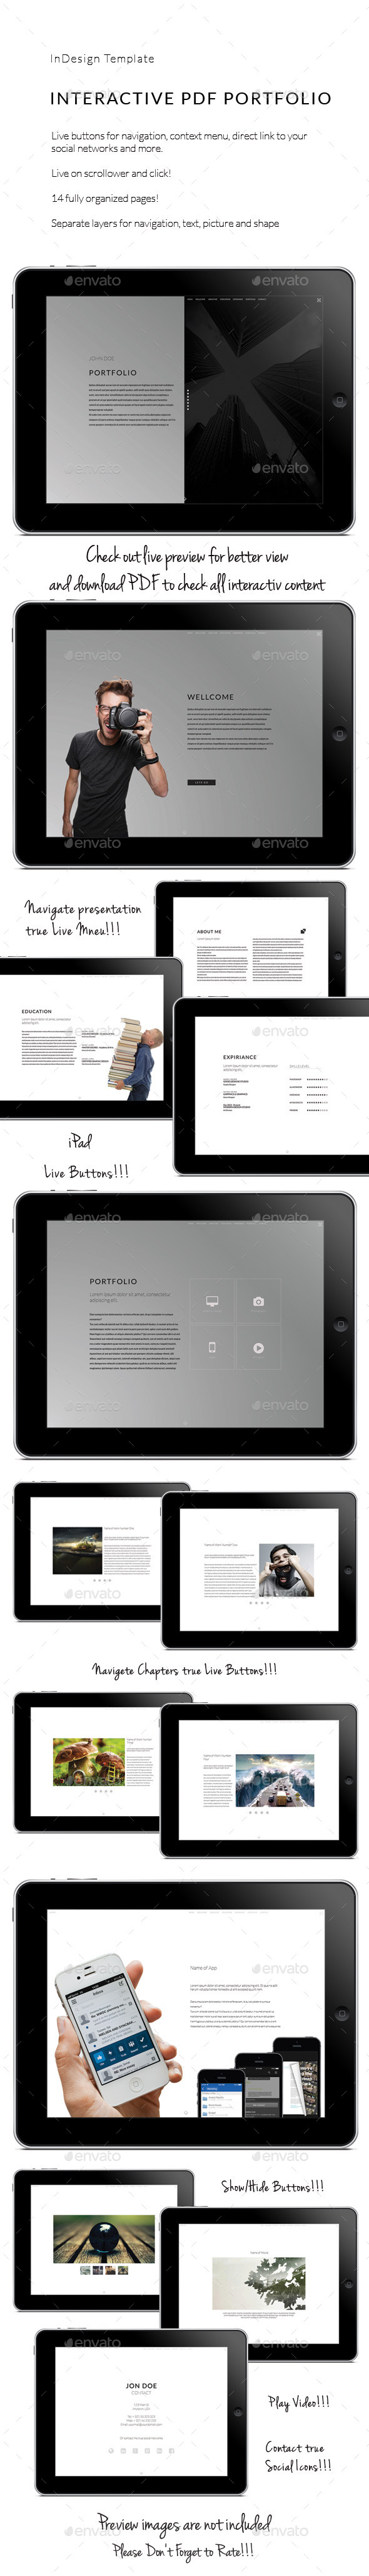 Interactive PDF Prezentation iPad No5 - Digital Magazines ePublishing